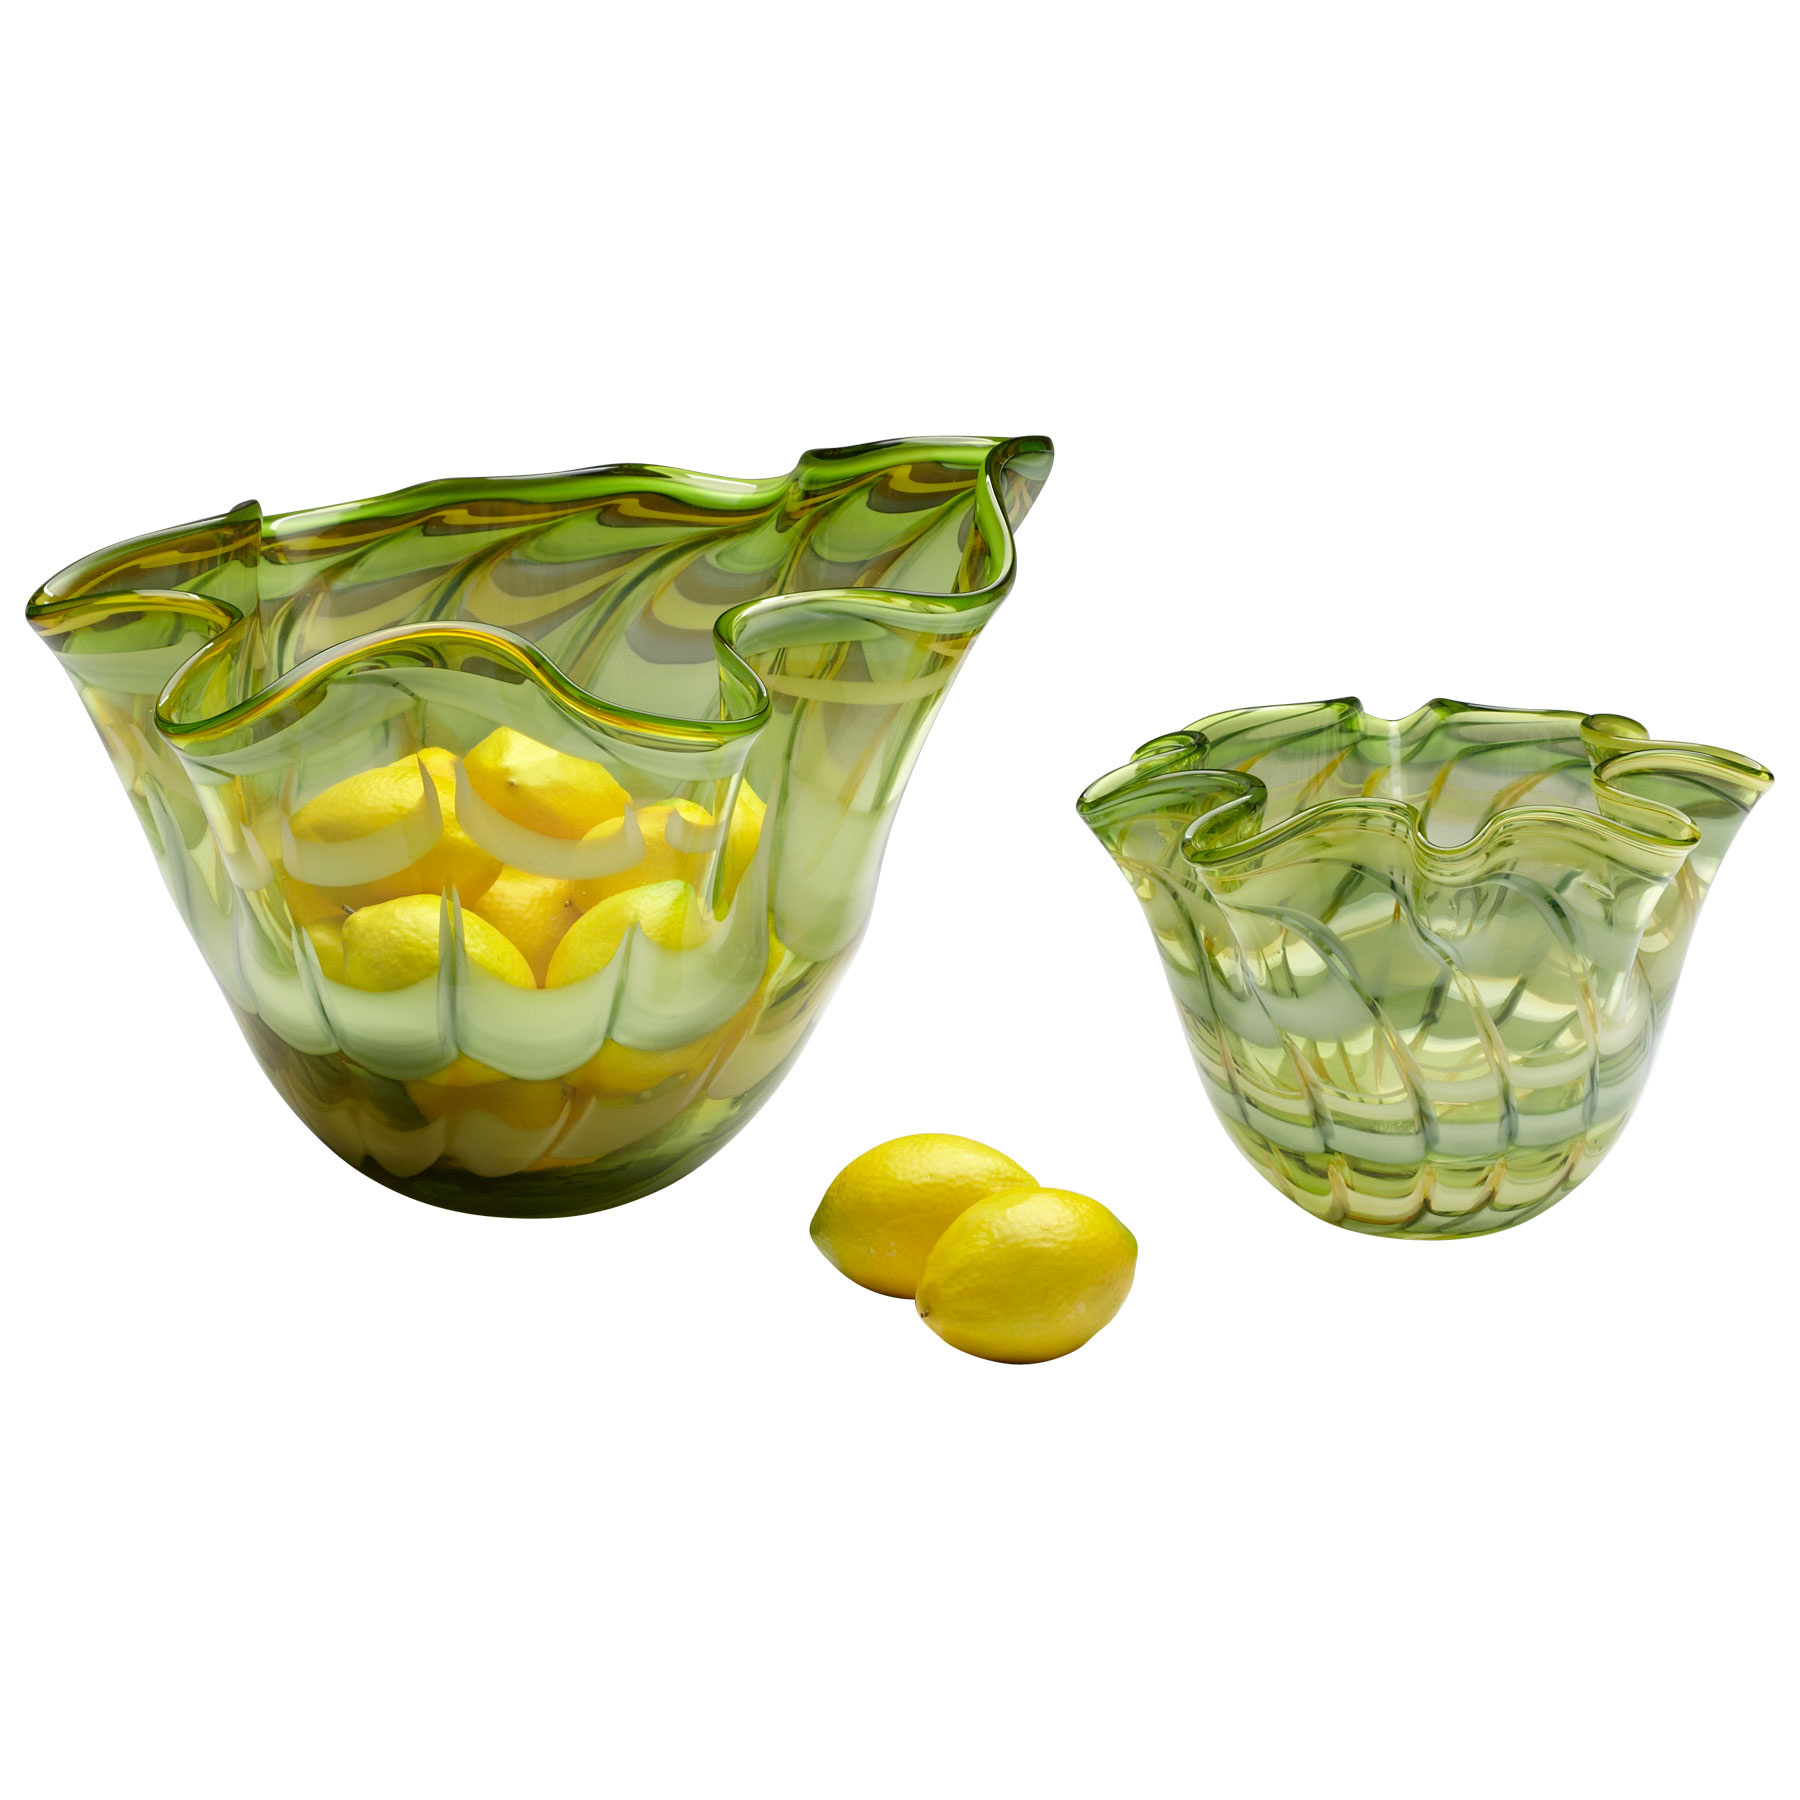 Coastal Beach Light Green Yellow Scalloped Edge Glass Fruit Bowl - 5.5 Inch